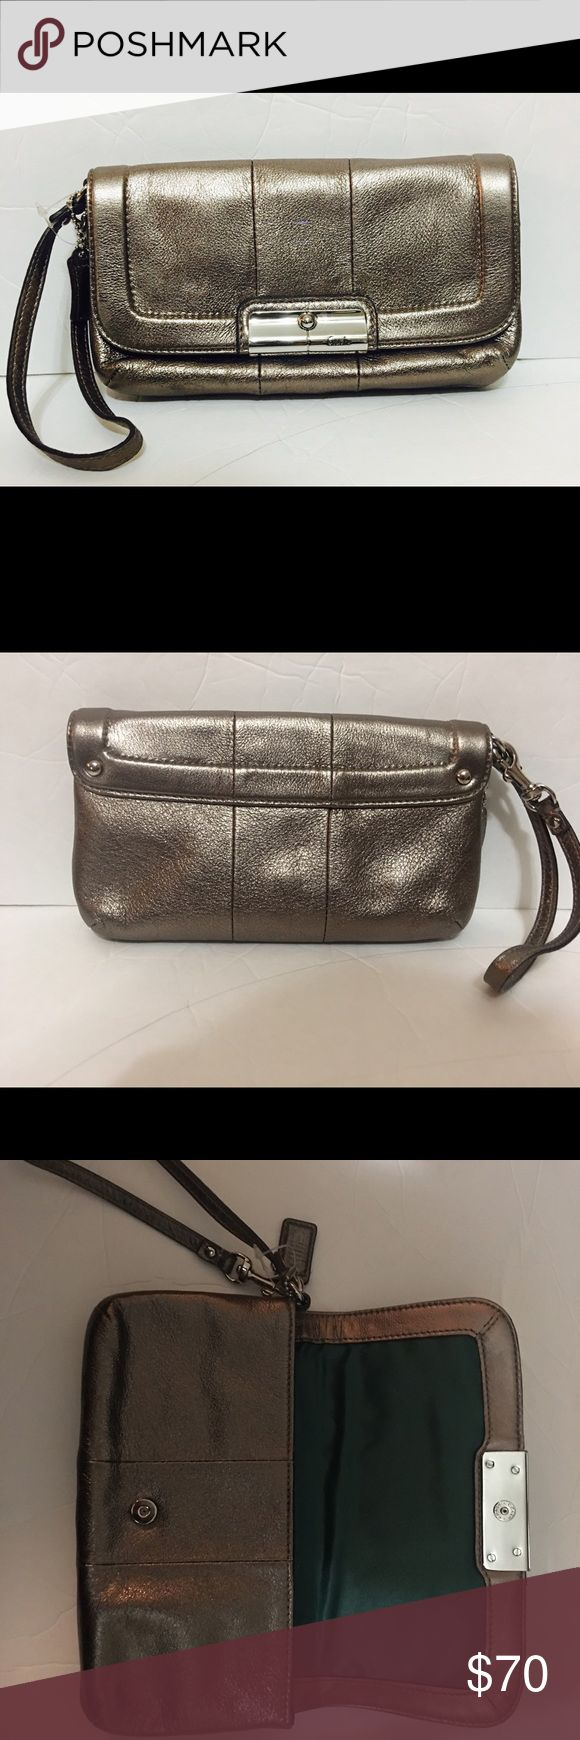 Coach Clutch Wristlet- Never Used Super cute for a night out or play it down for a day of shopping! Coach Bags Clutches & Wristlets